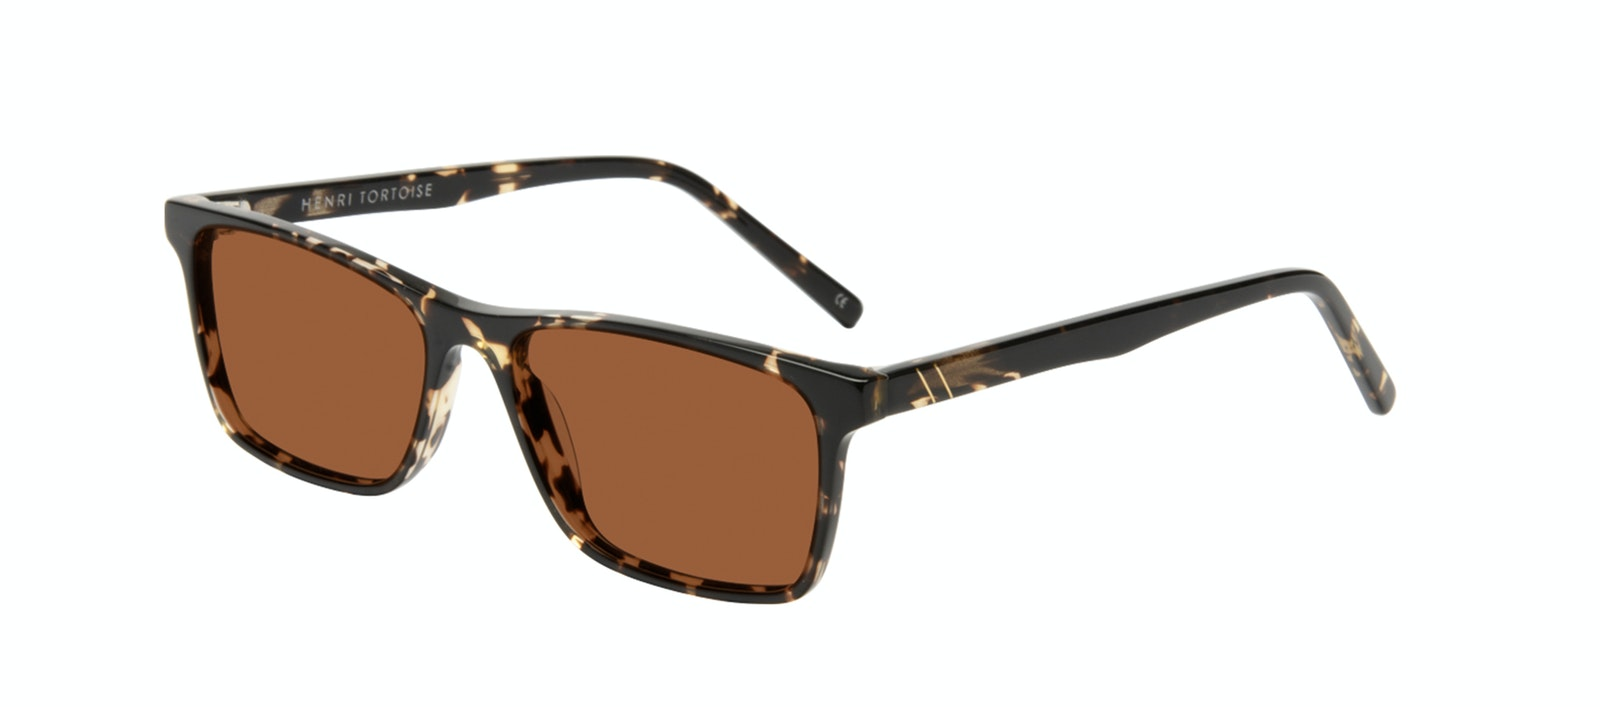 Affordable Fashion Glasses Rectangle Sunglasses Men Henri Tortoise Tilt